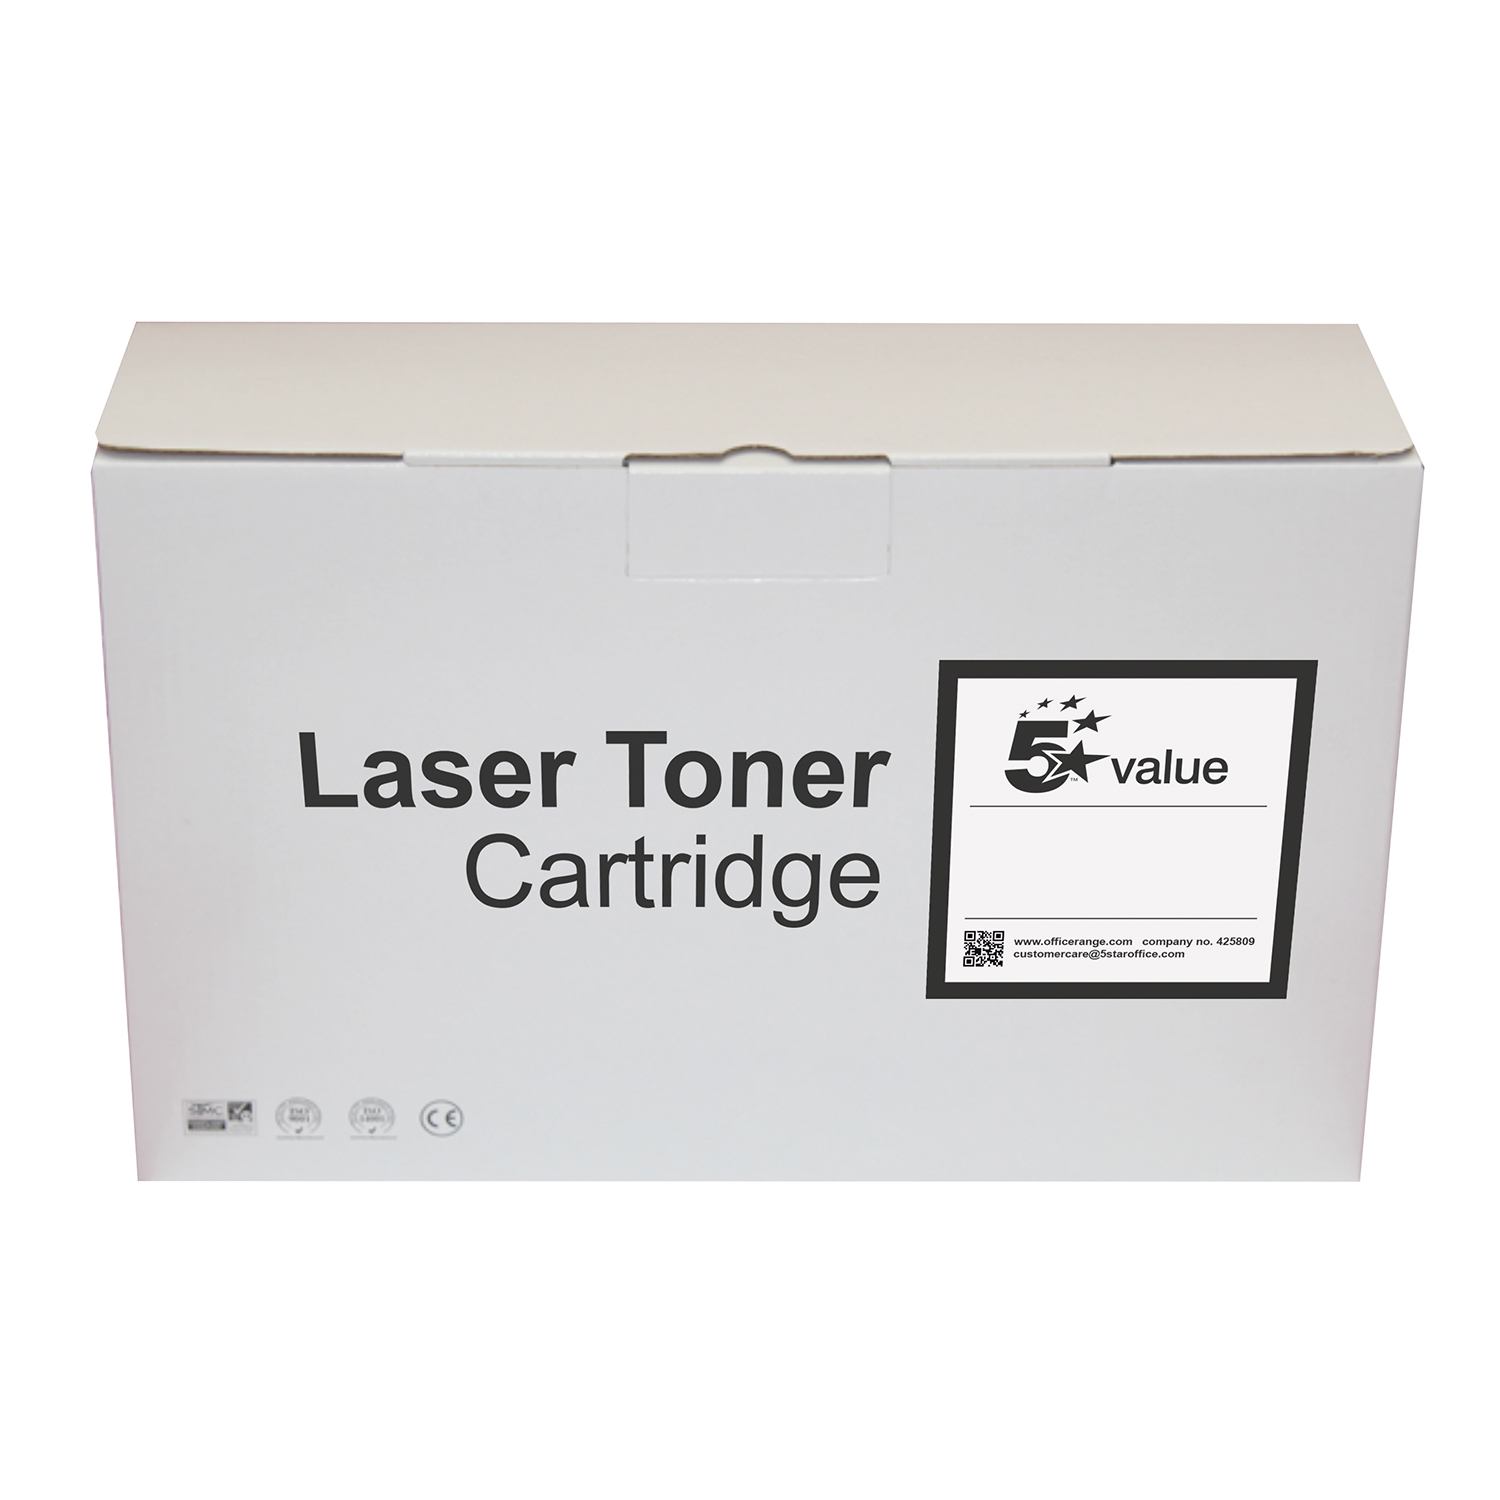 Laser Toner Cartridges 5 Star Value Brother Drum Unit DR3300 Black